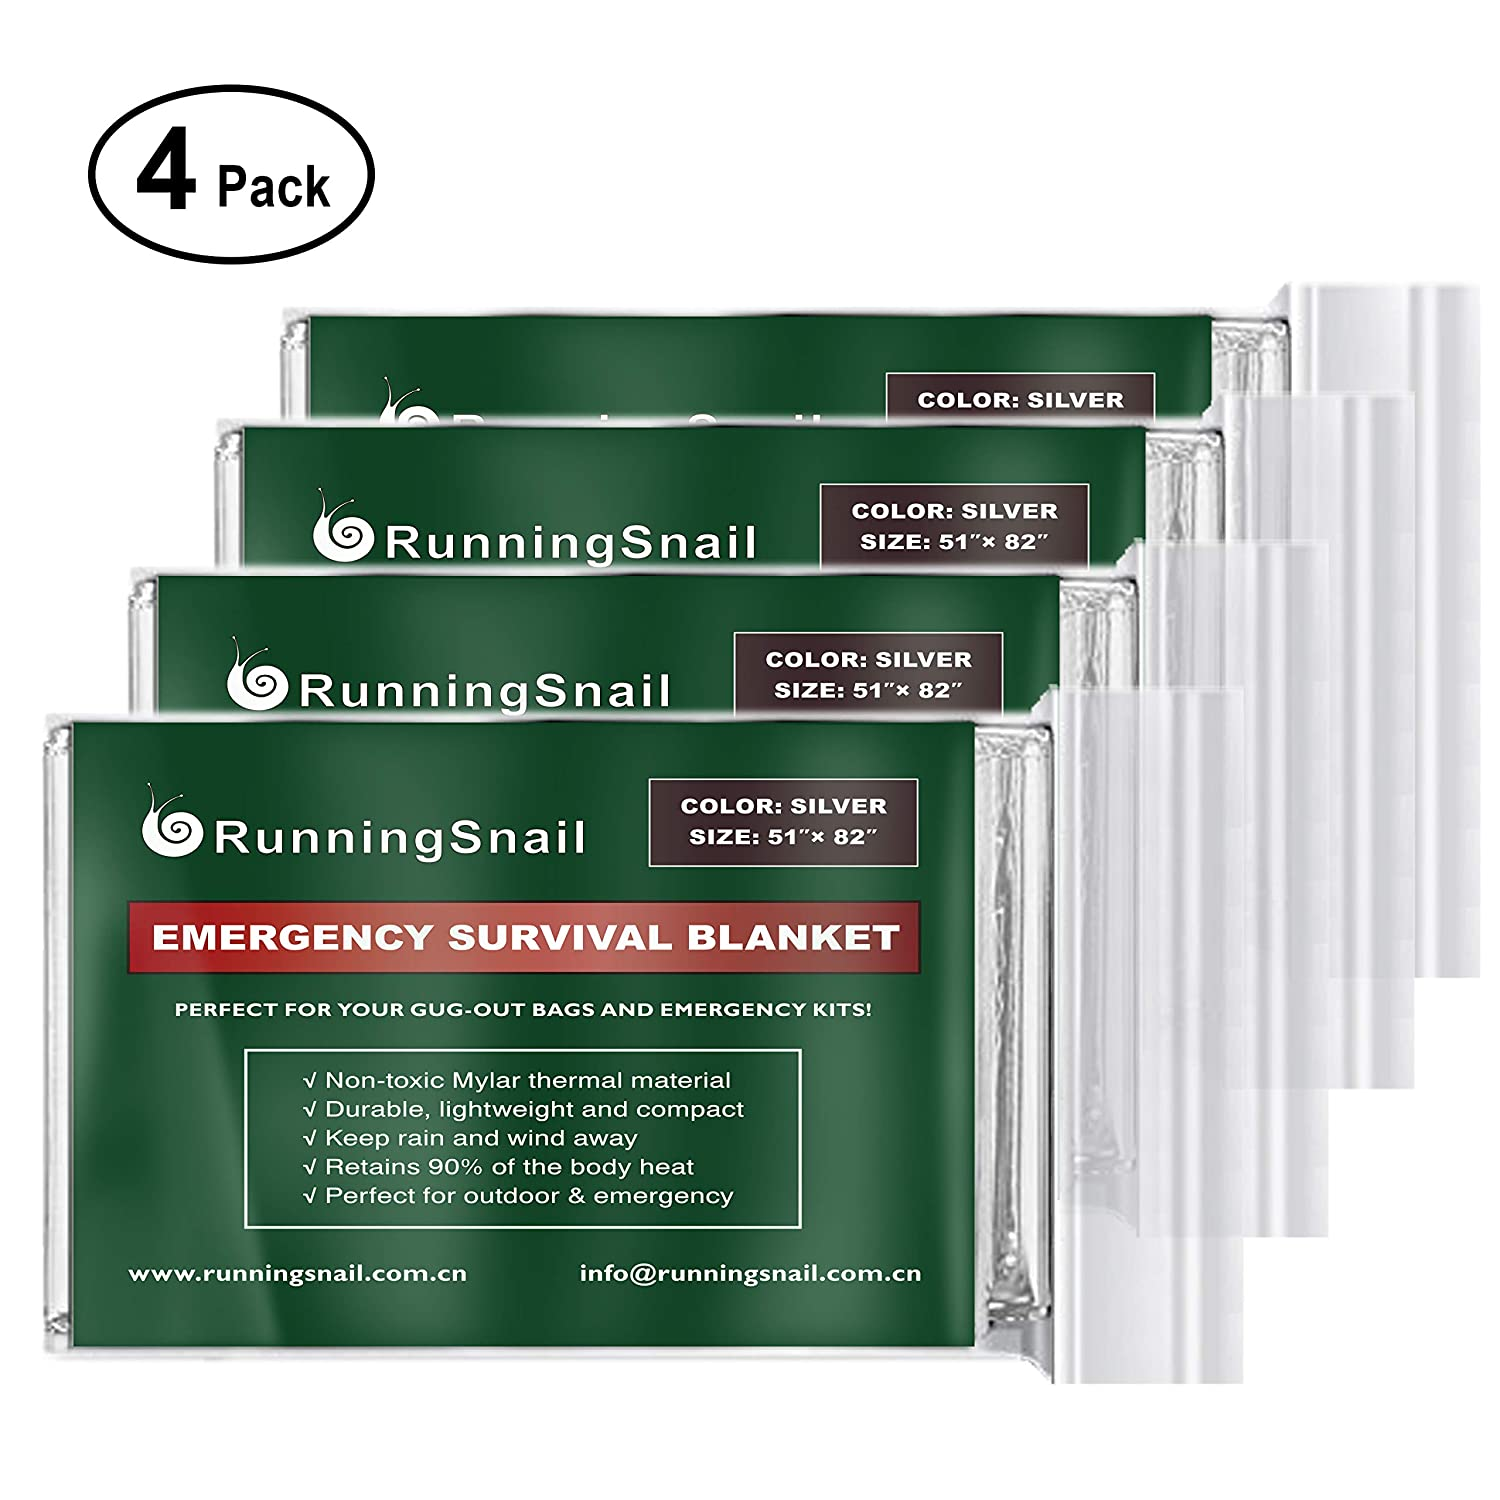 Camping RunningSnail Emergency Mylar Space Blanket for Survival Kit Car and Home Hiking Go-Bag Marathons First Aid Kit